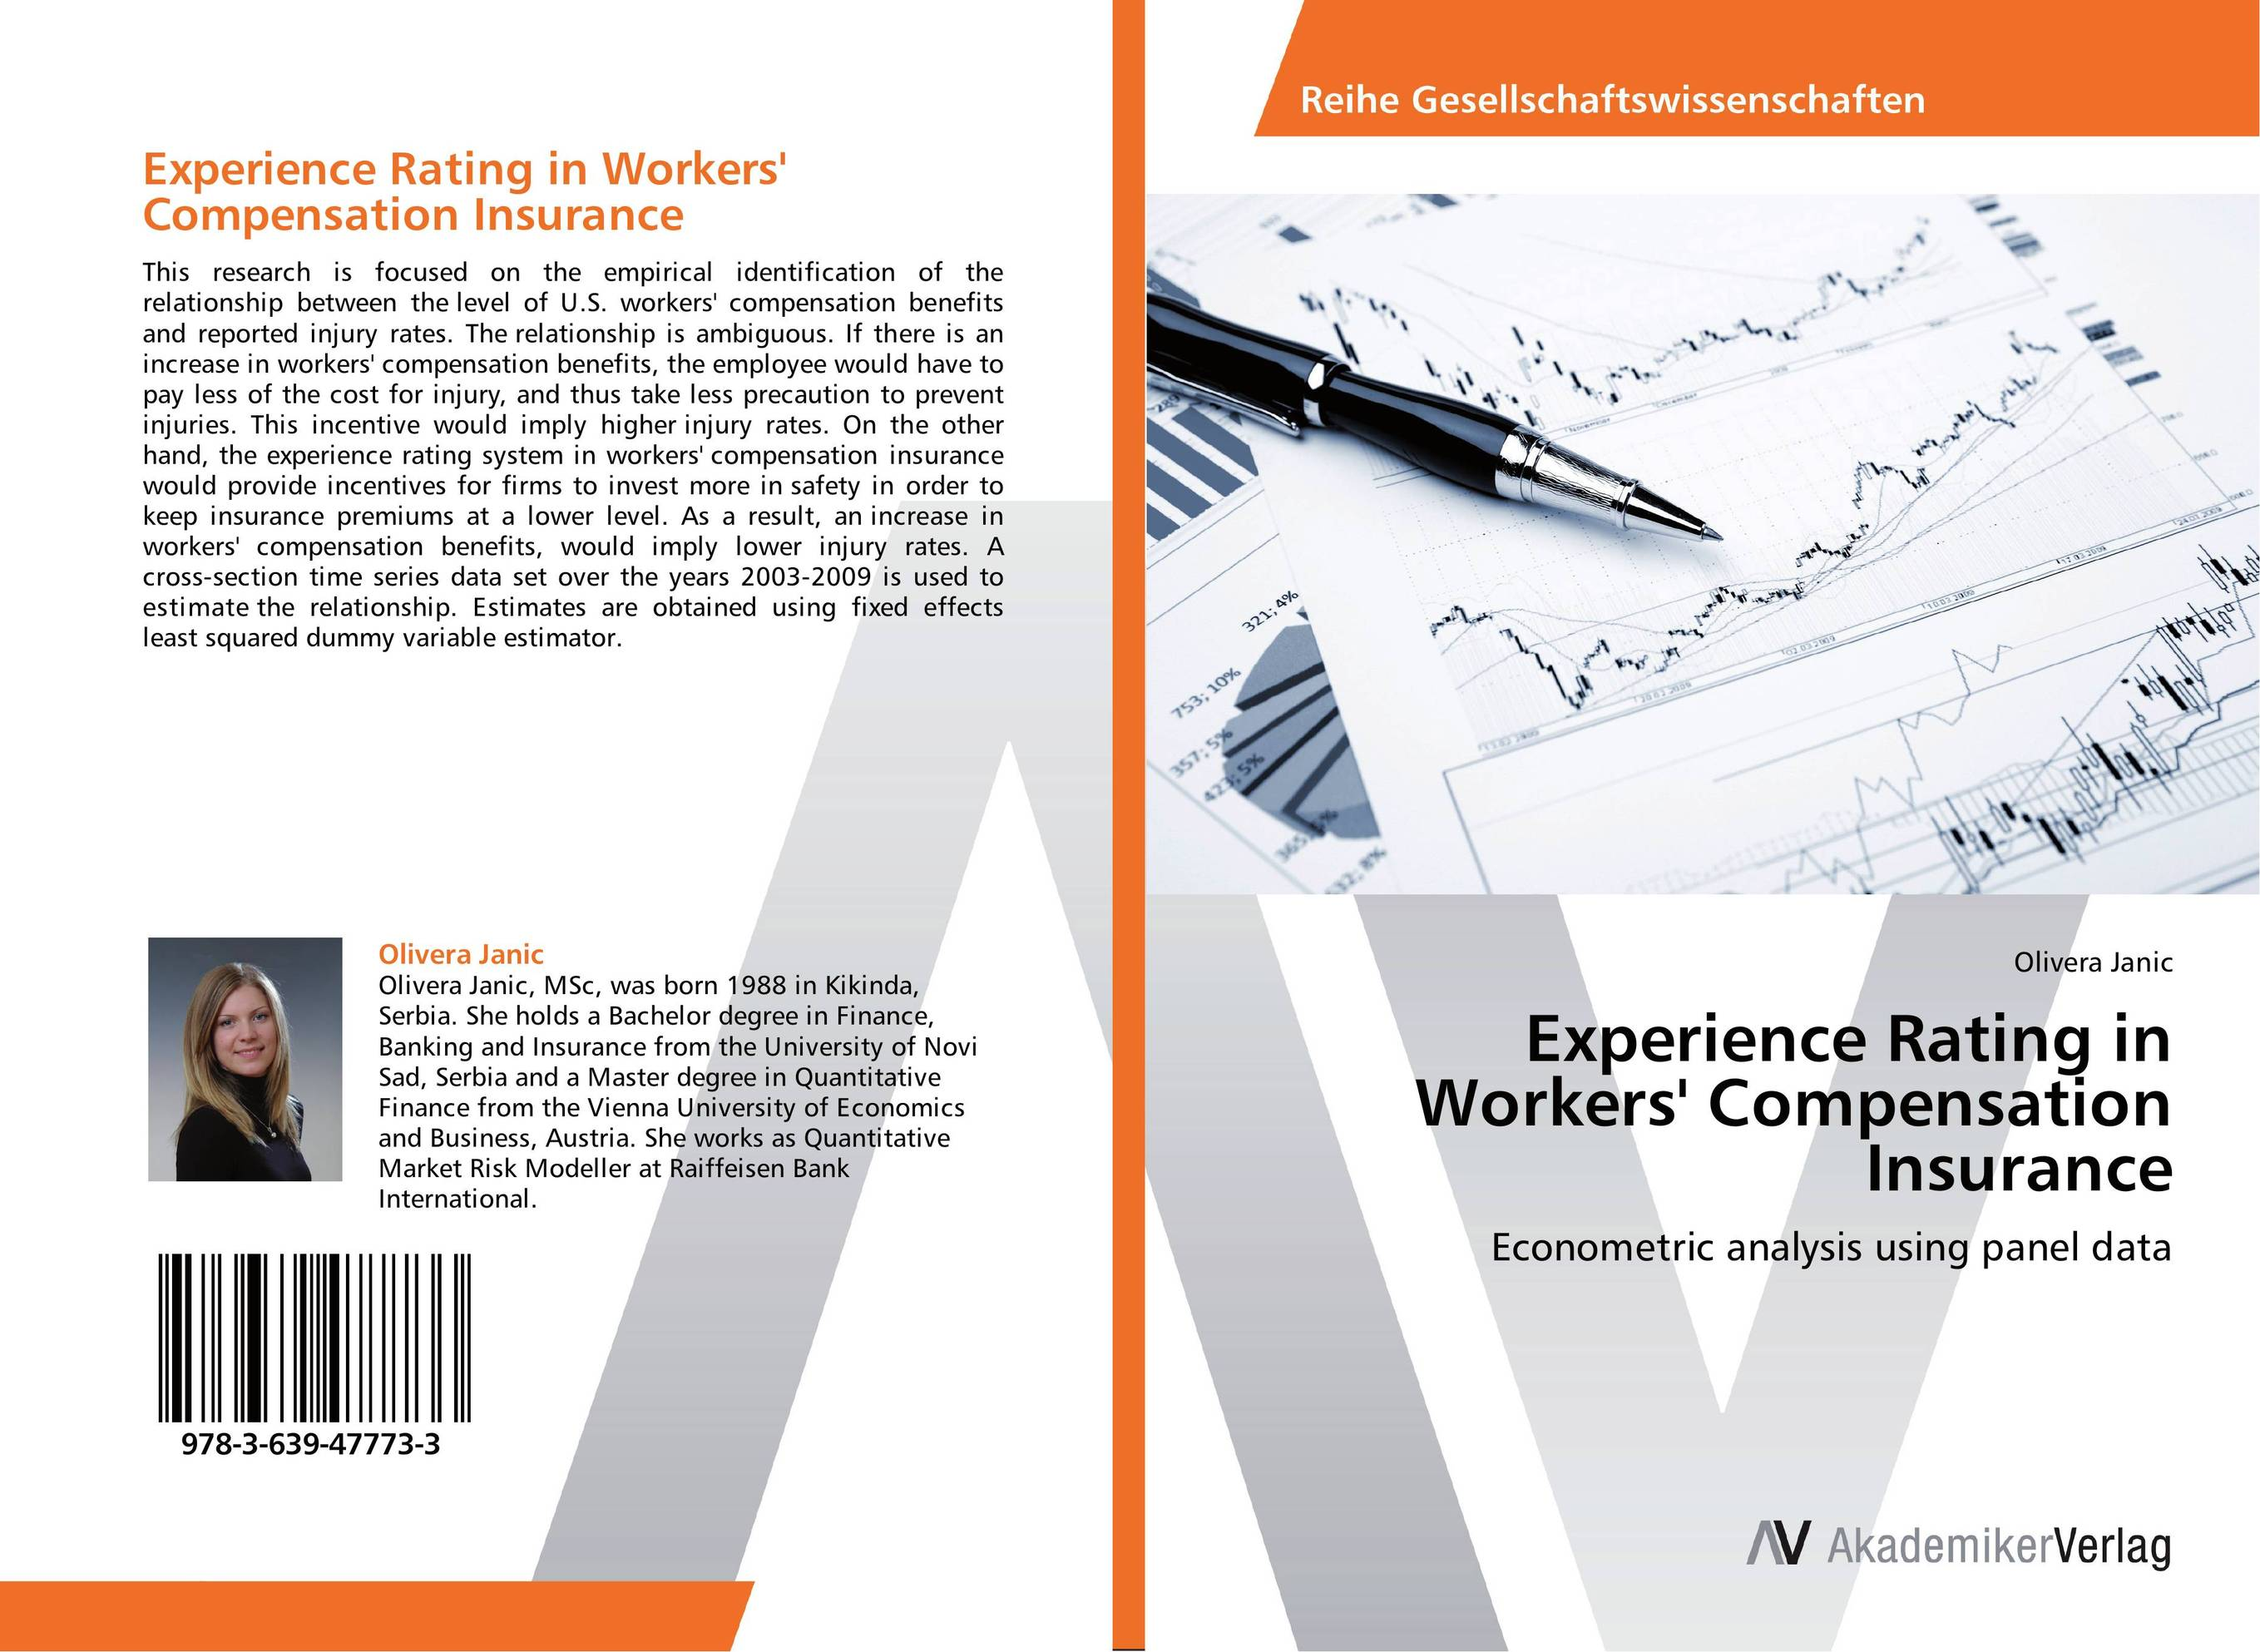 Experience Rating in Workers' Compensation Insurance